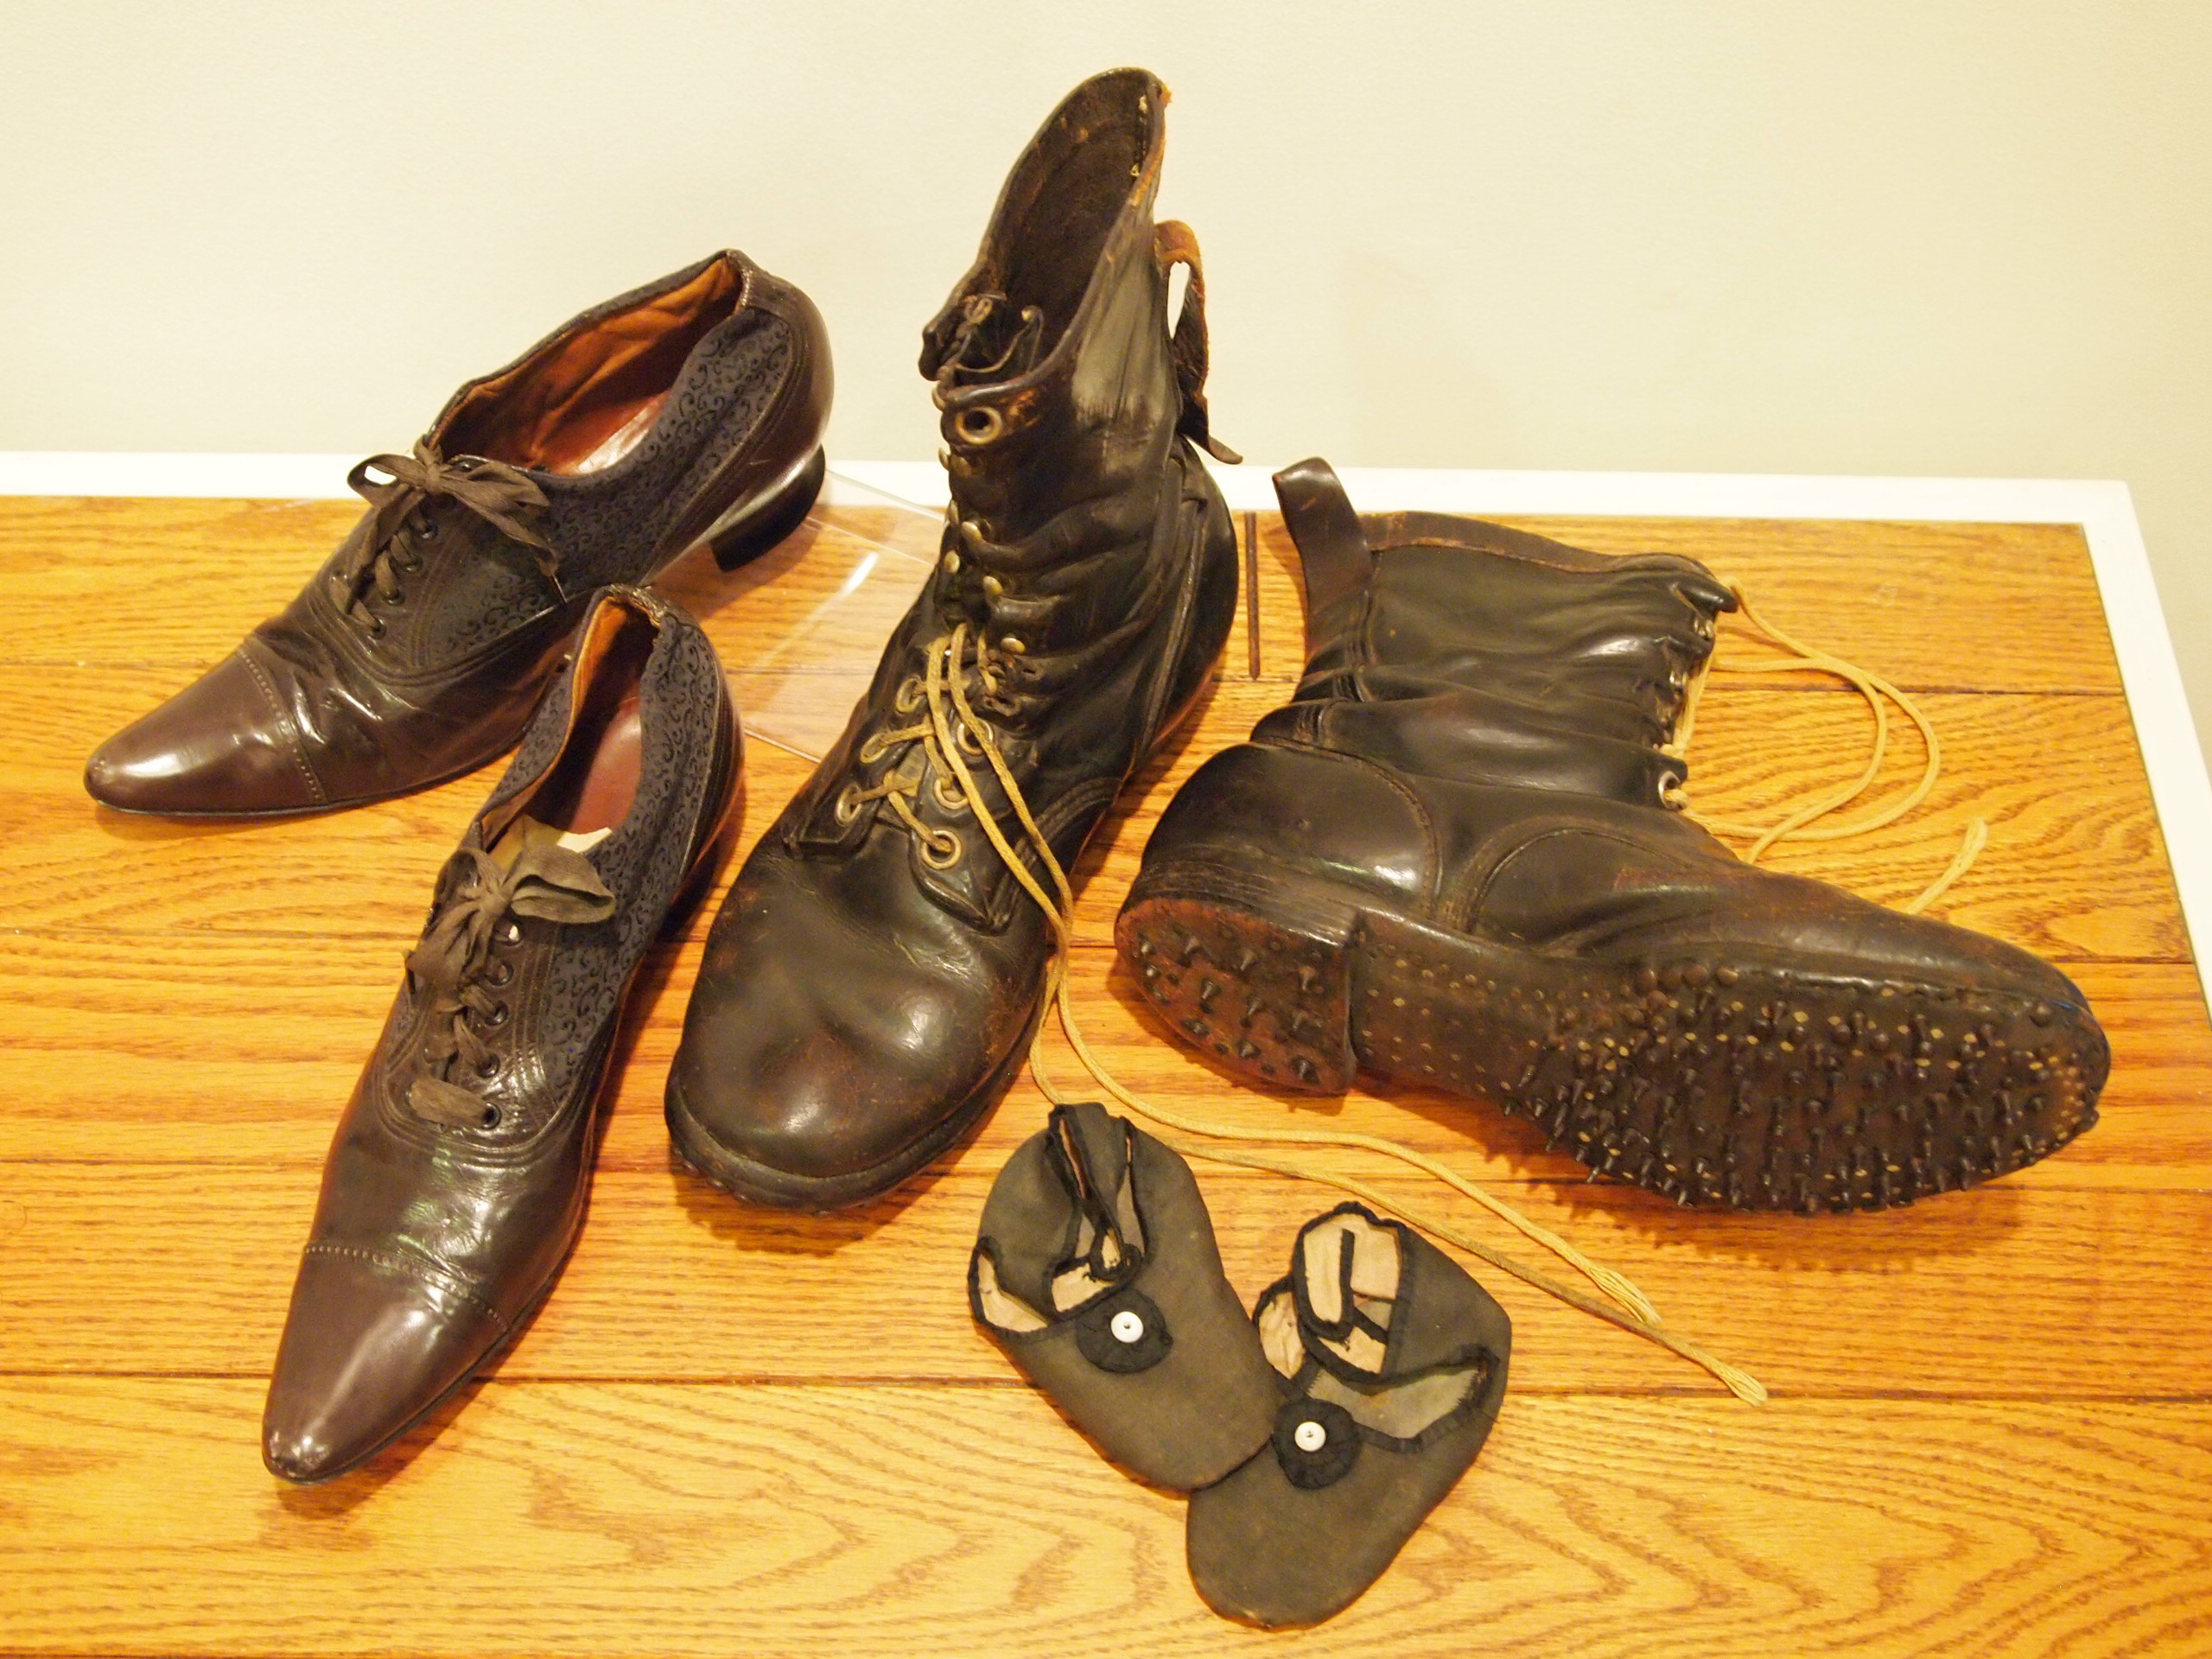 Shoes from the Morrison County Historical Society collection, starting on the left and moving clockwise: Mrs. Lottie Lee Martin's